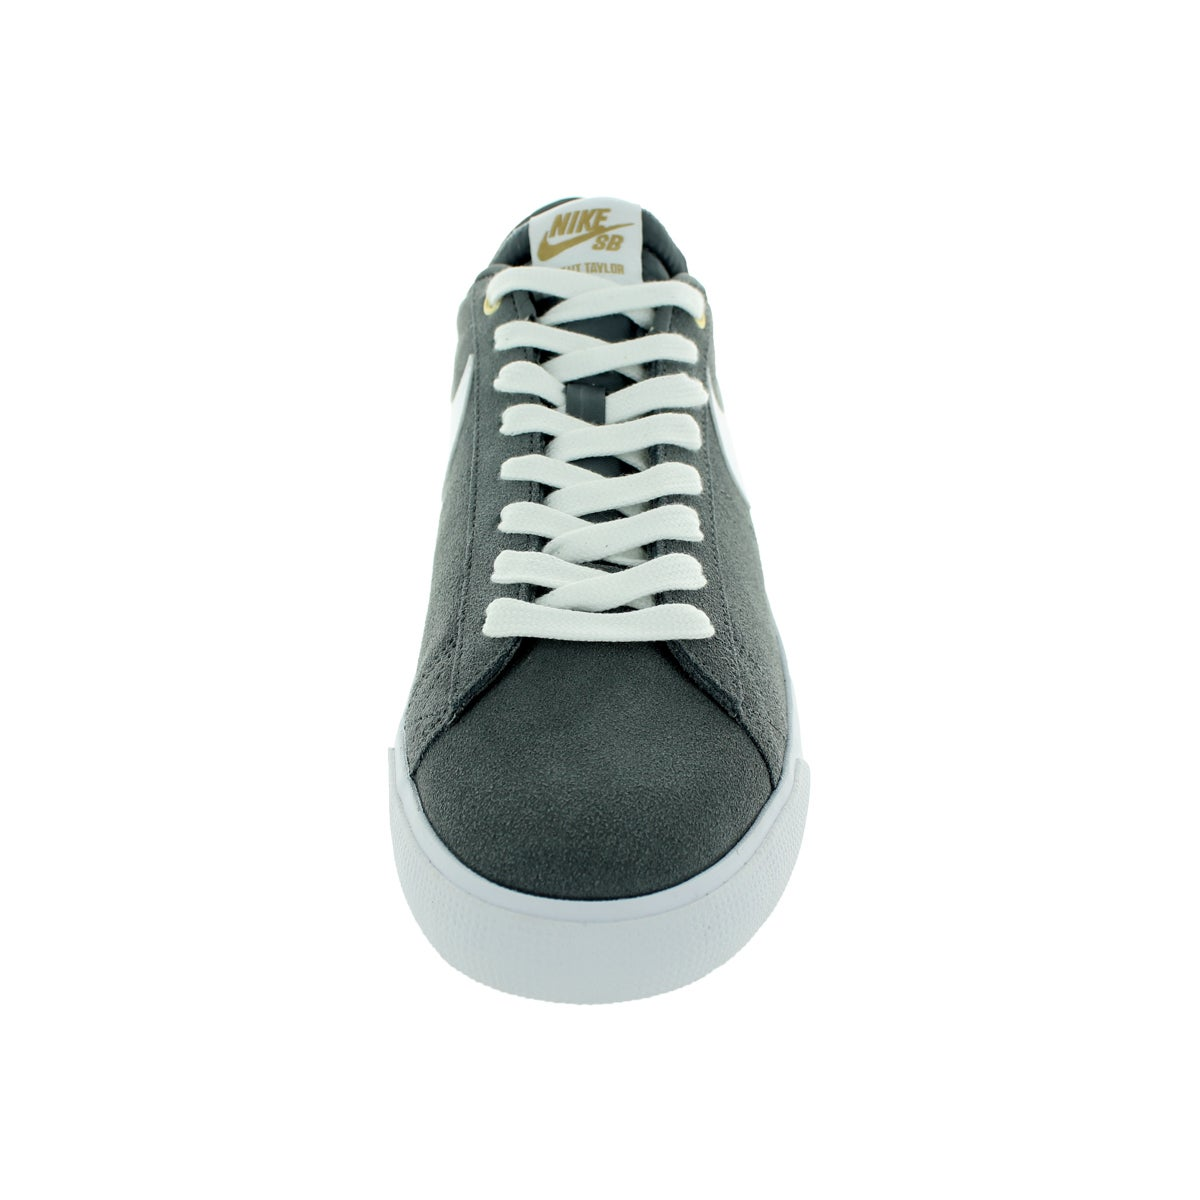 70a0eb177d1 Shop Nike Men s Blazer Low GT Cool Grey White Tide Pool Blue Skate Shoes -  Free Shipping Today - Overstock - 13312120